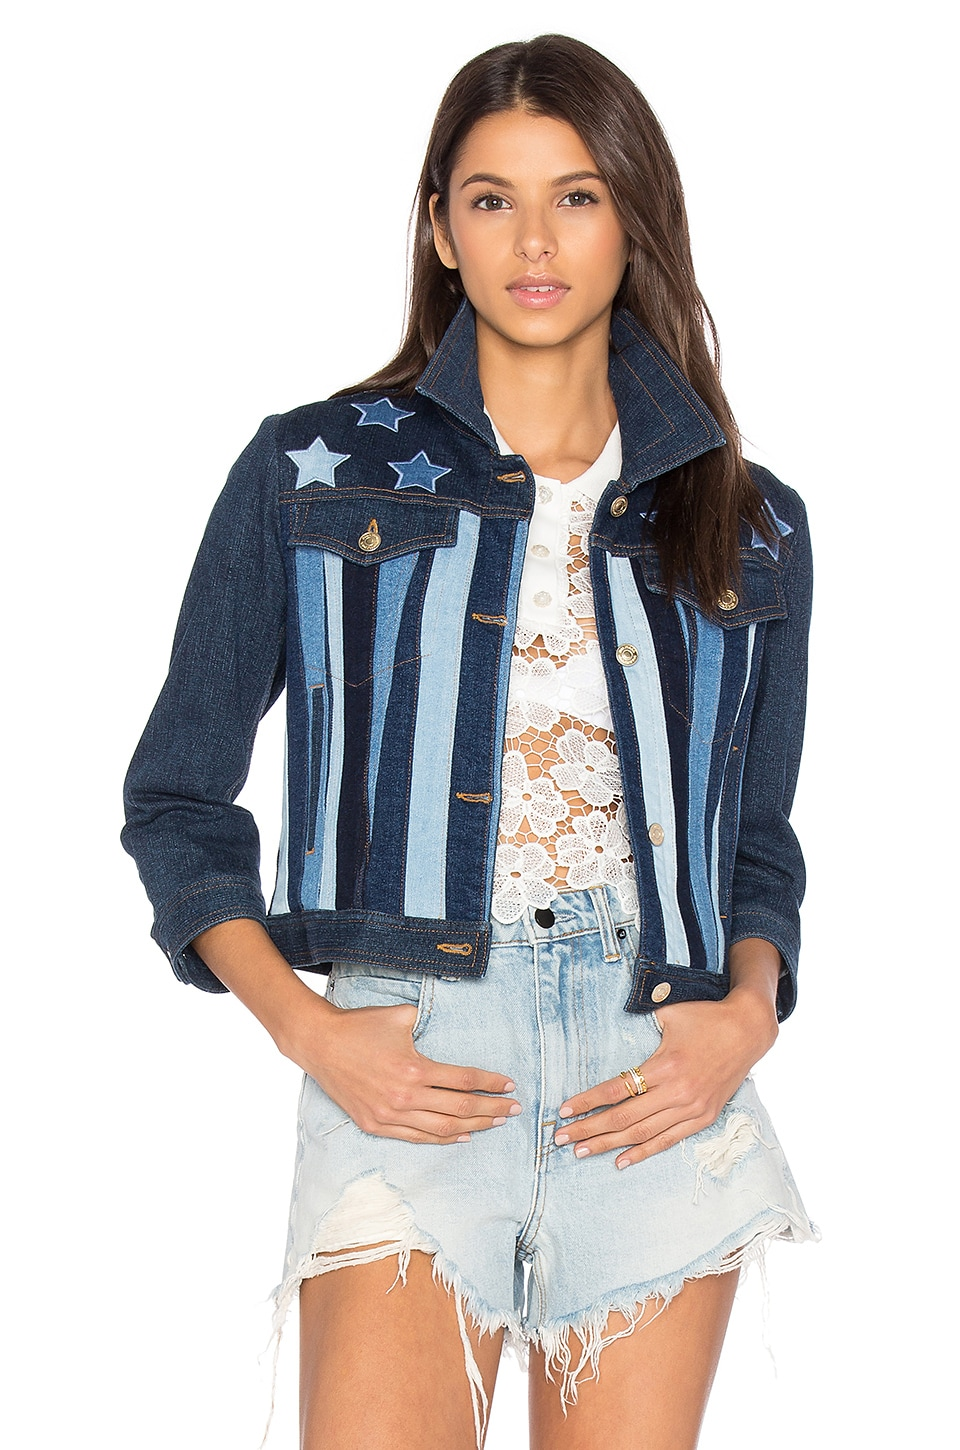 Hilfiger Collection Patchwork 5 Pocket Denim Jacket in Washed Denim & Multi